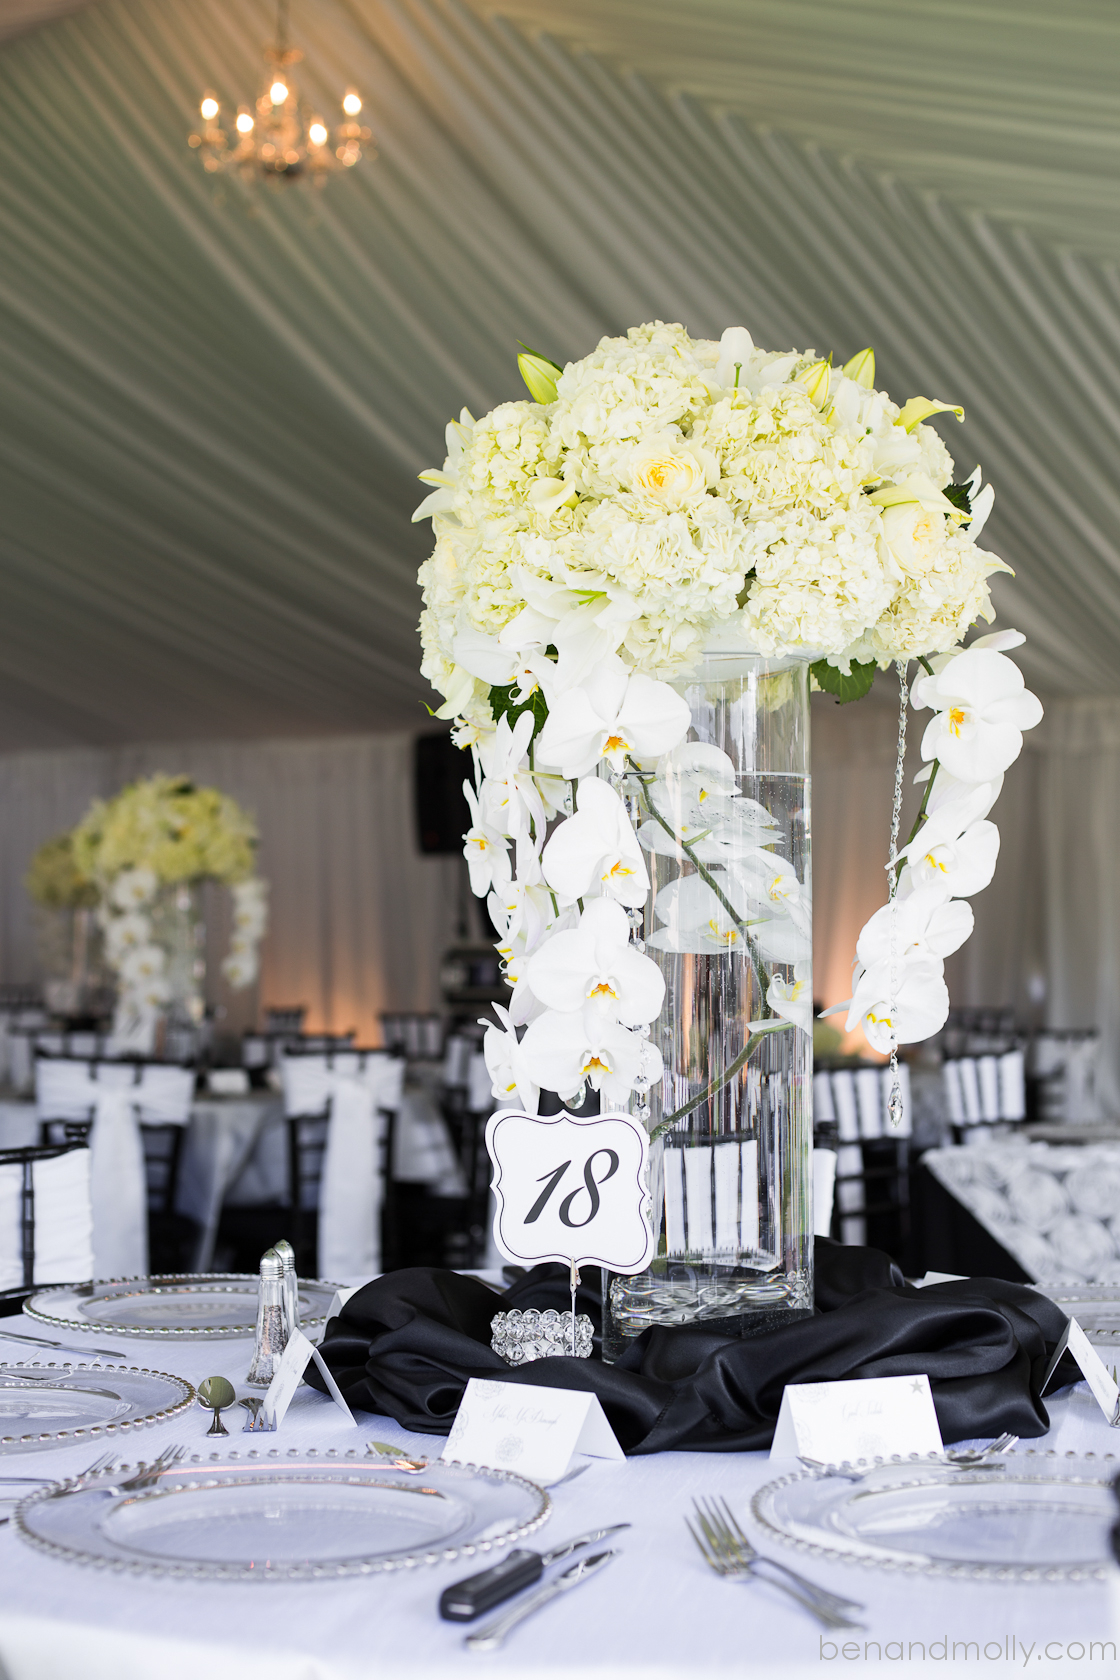 37 elegant floral centerpieces for wedding table decorating ideas classy white flower centerpiece for a wedding reception image credit paisley petals junglespirit Image collections